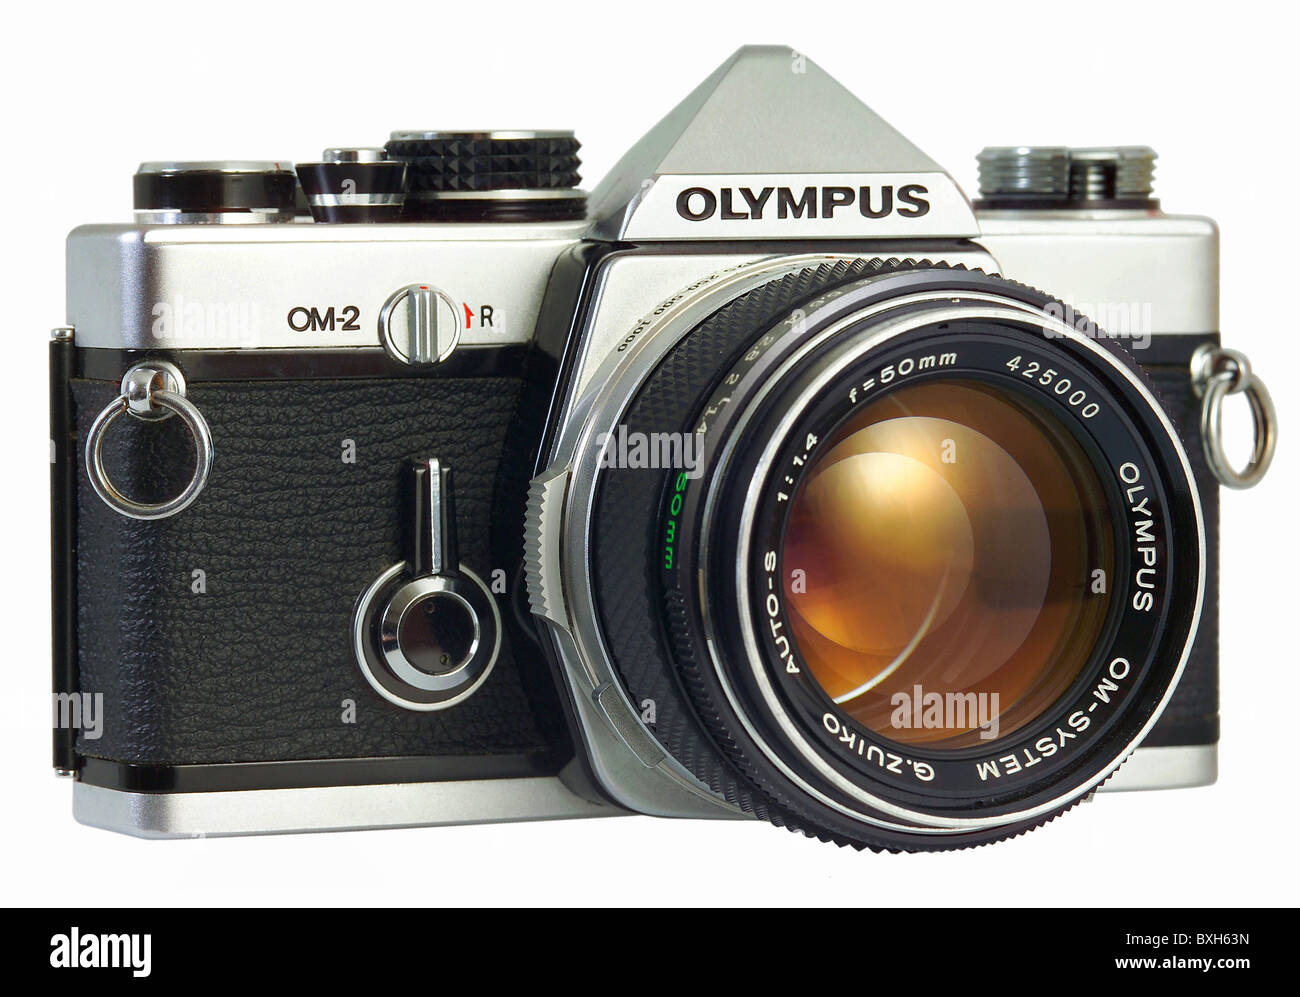 photography, cameras, Olympus camera OM2, first version with TTL flash, Japan, 1975, 1970s, 70s, 20th century, historic, - Stock Image